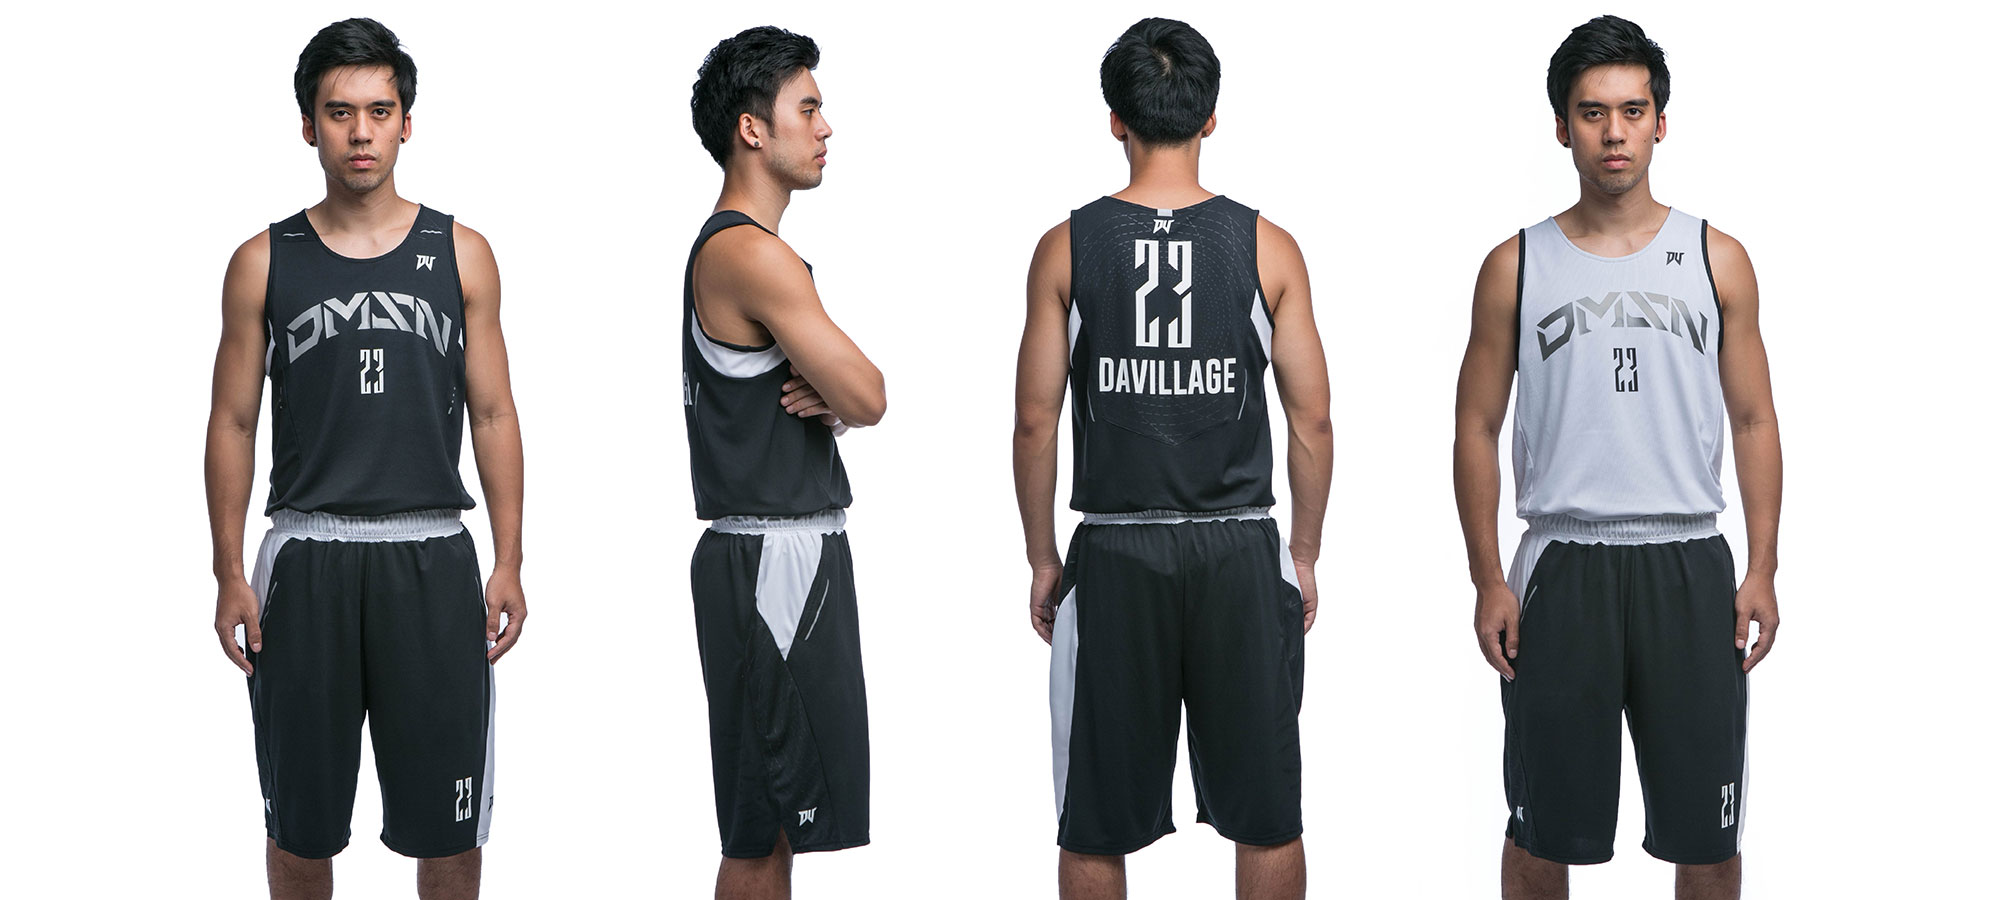 jersey-basketball-dimensional1-black-white-demo-model